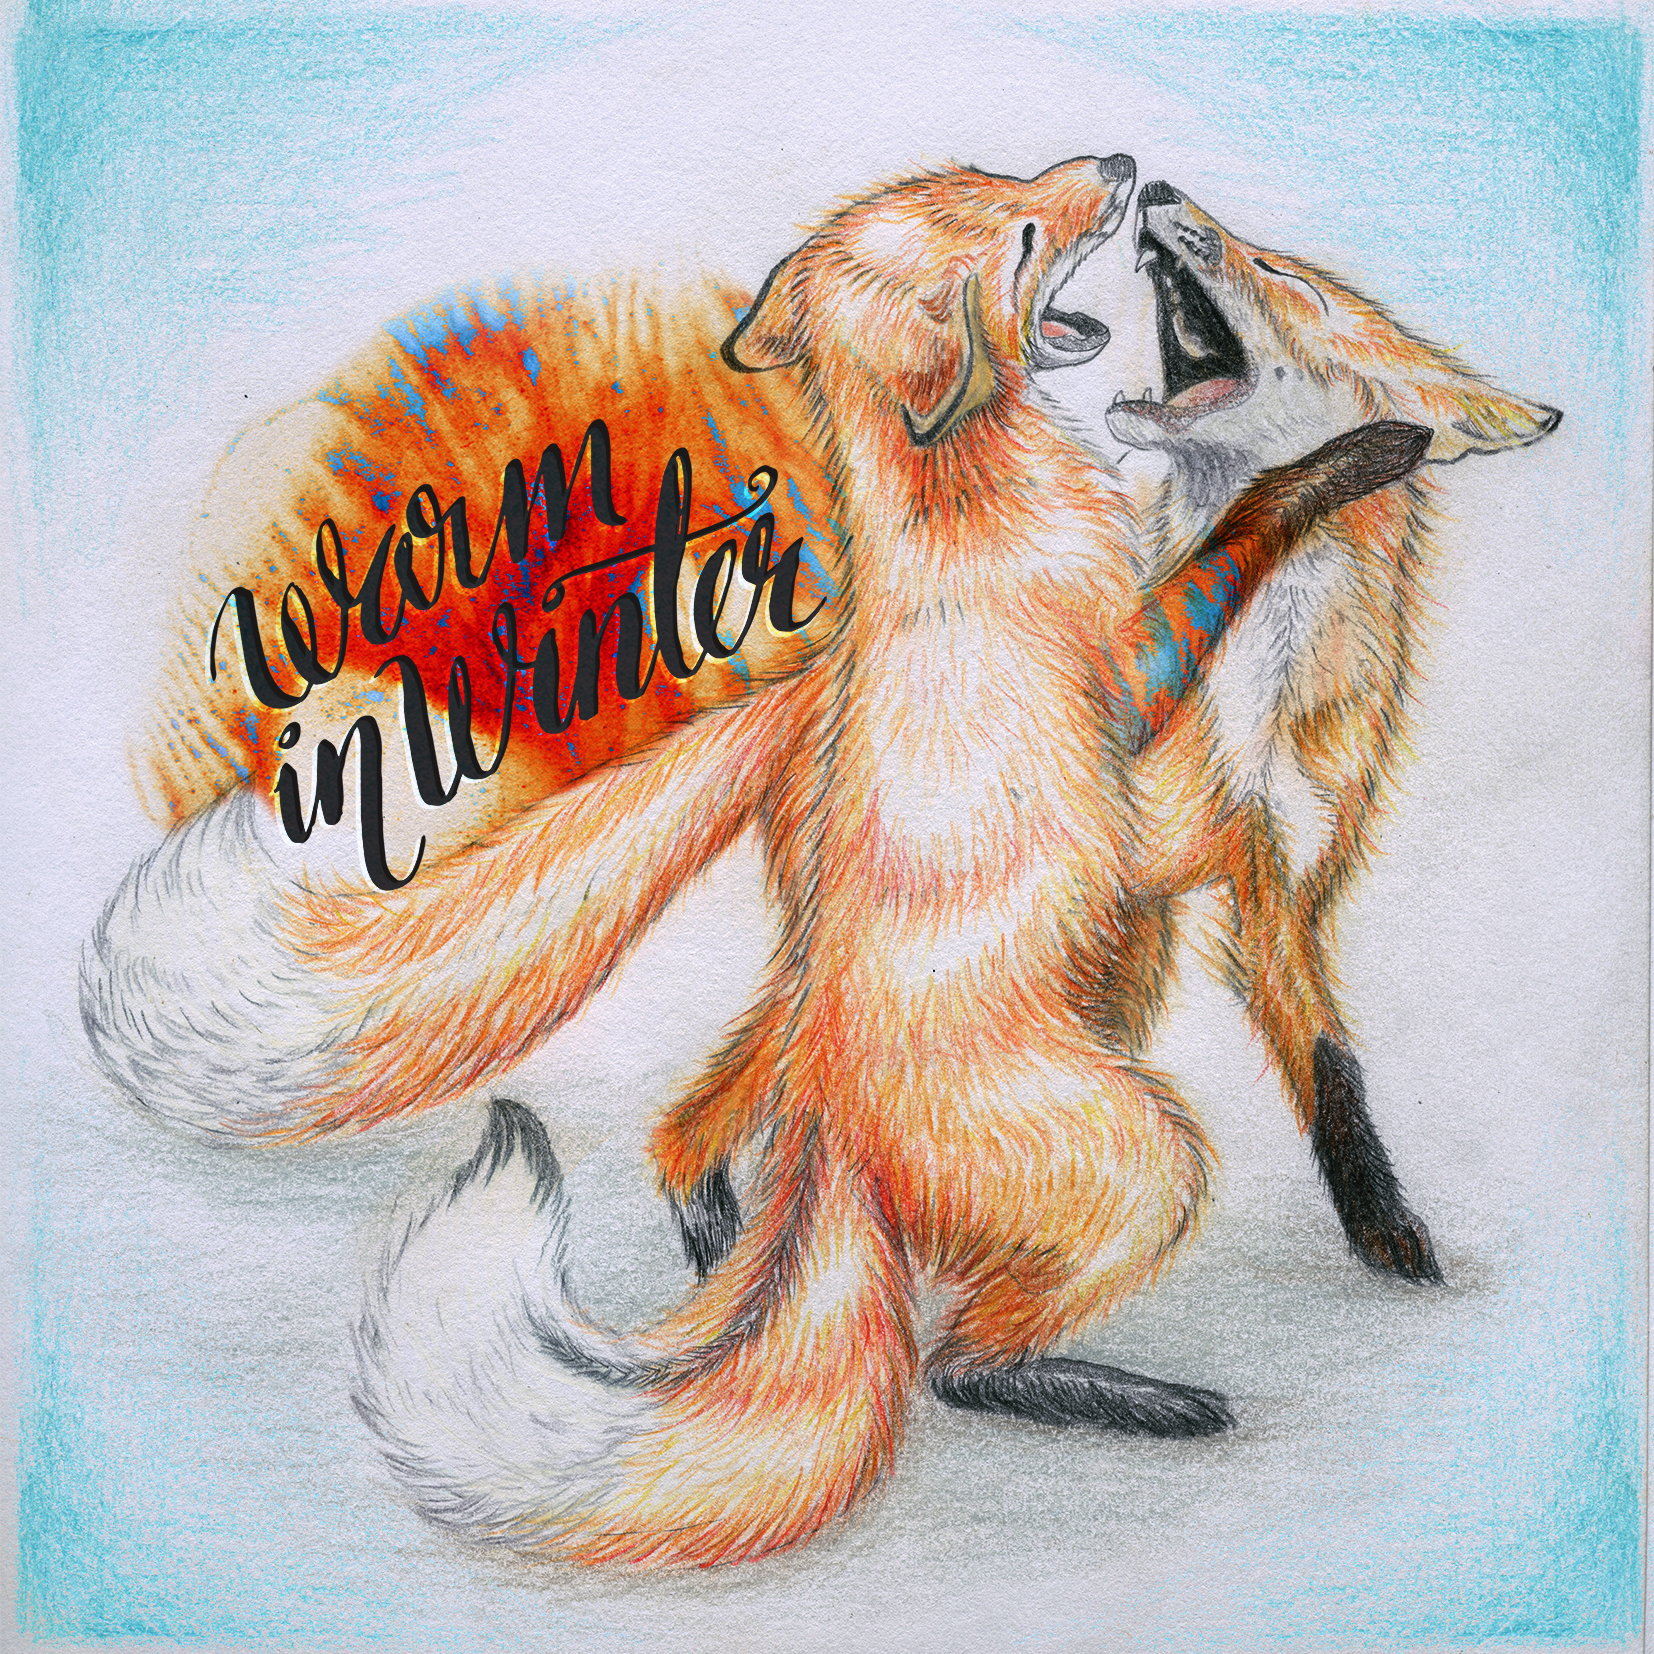 Warm in Winter single cover